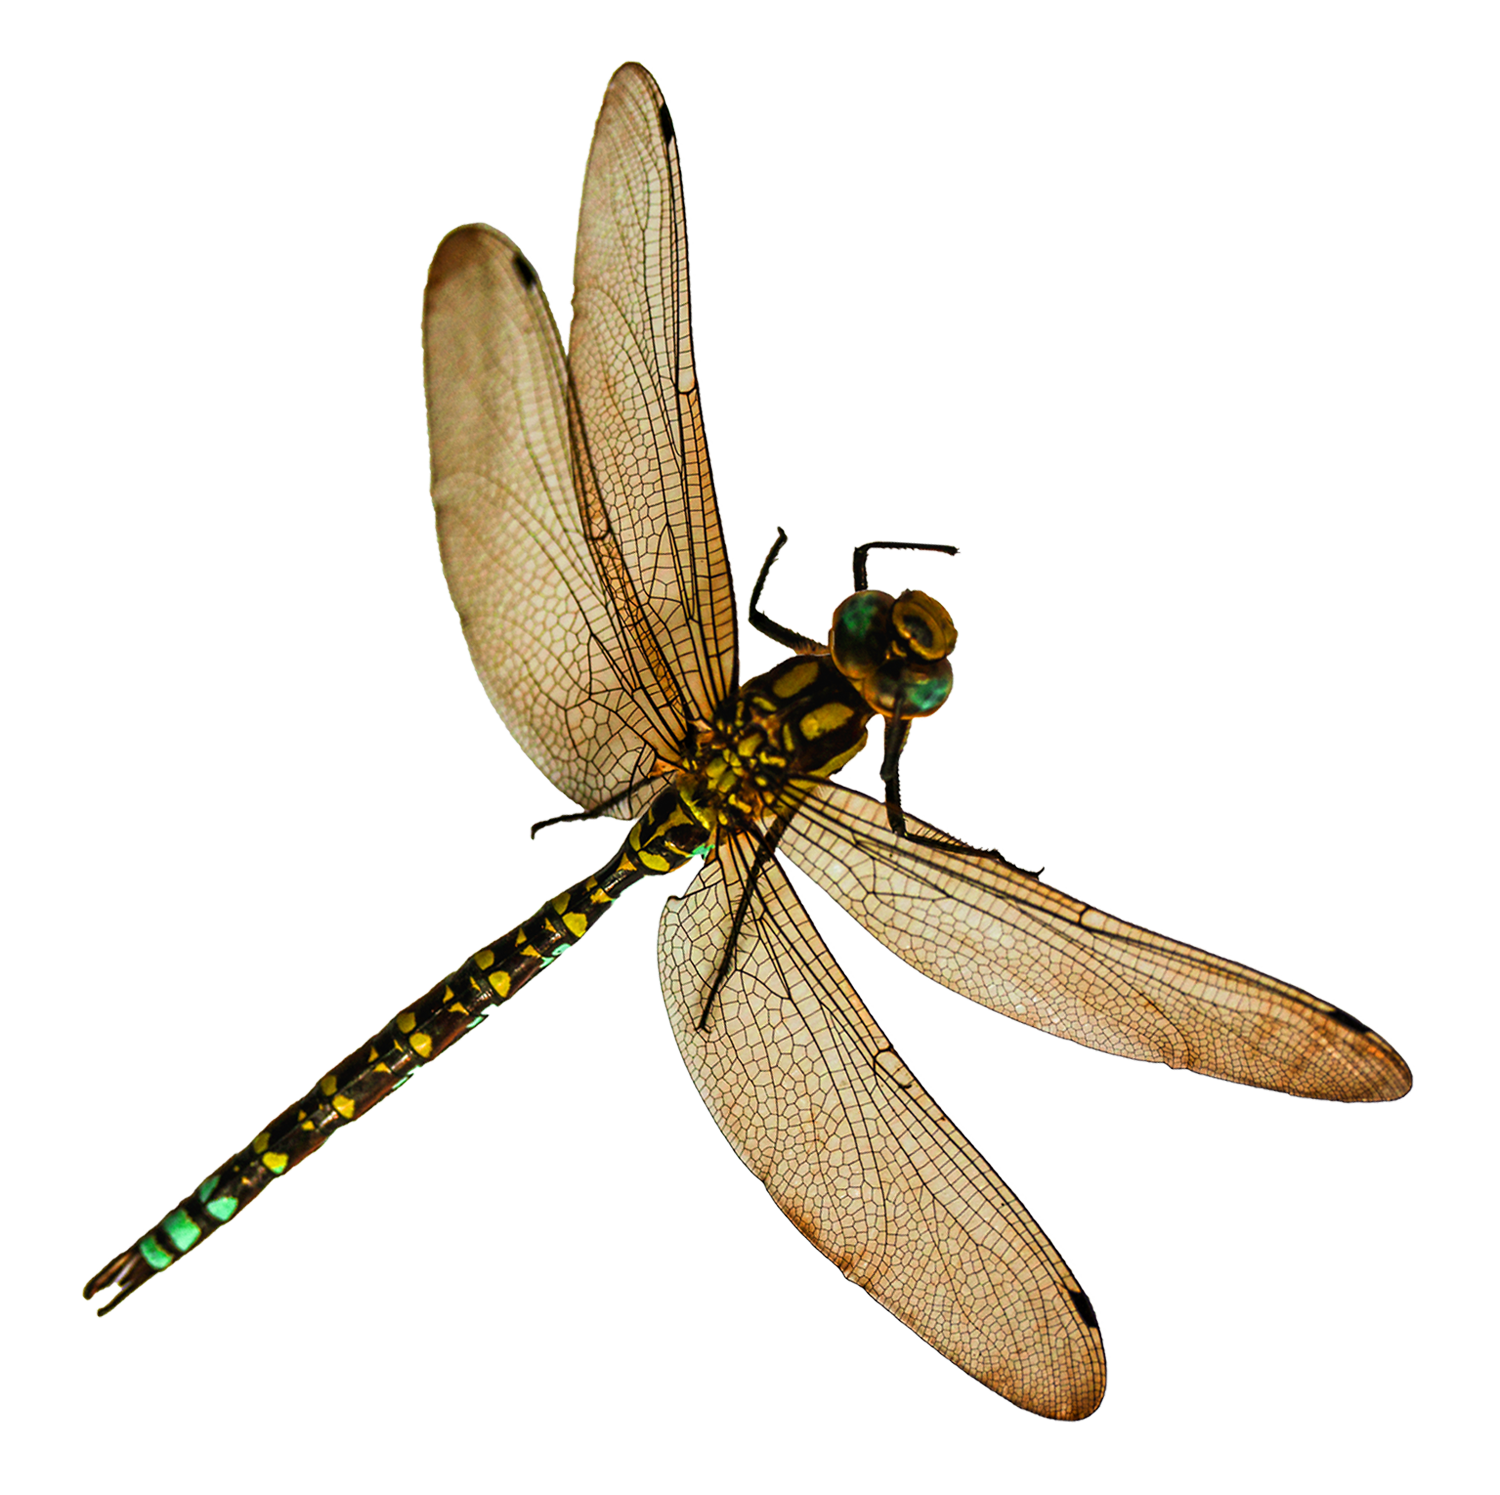 Dragonfly PNG Image.